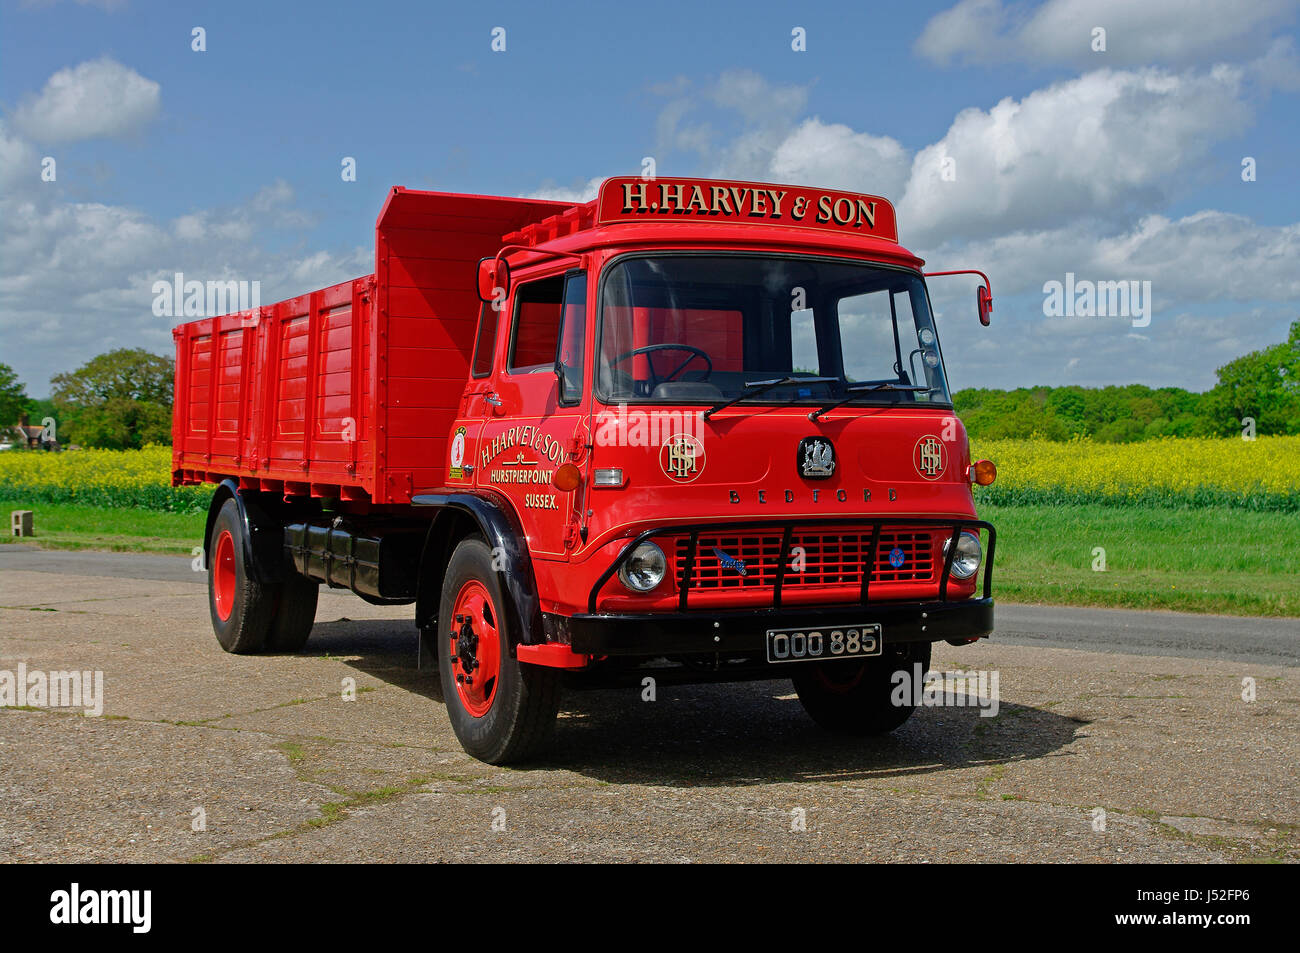 Red Bedford Truck Stock Photos & Red Bedford Truck Stock